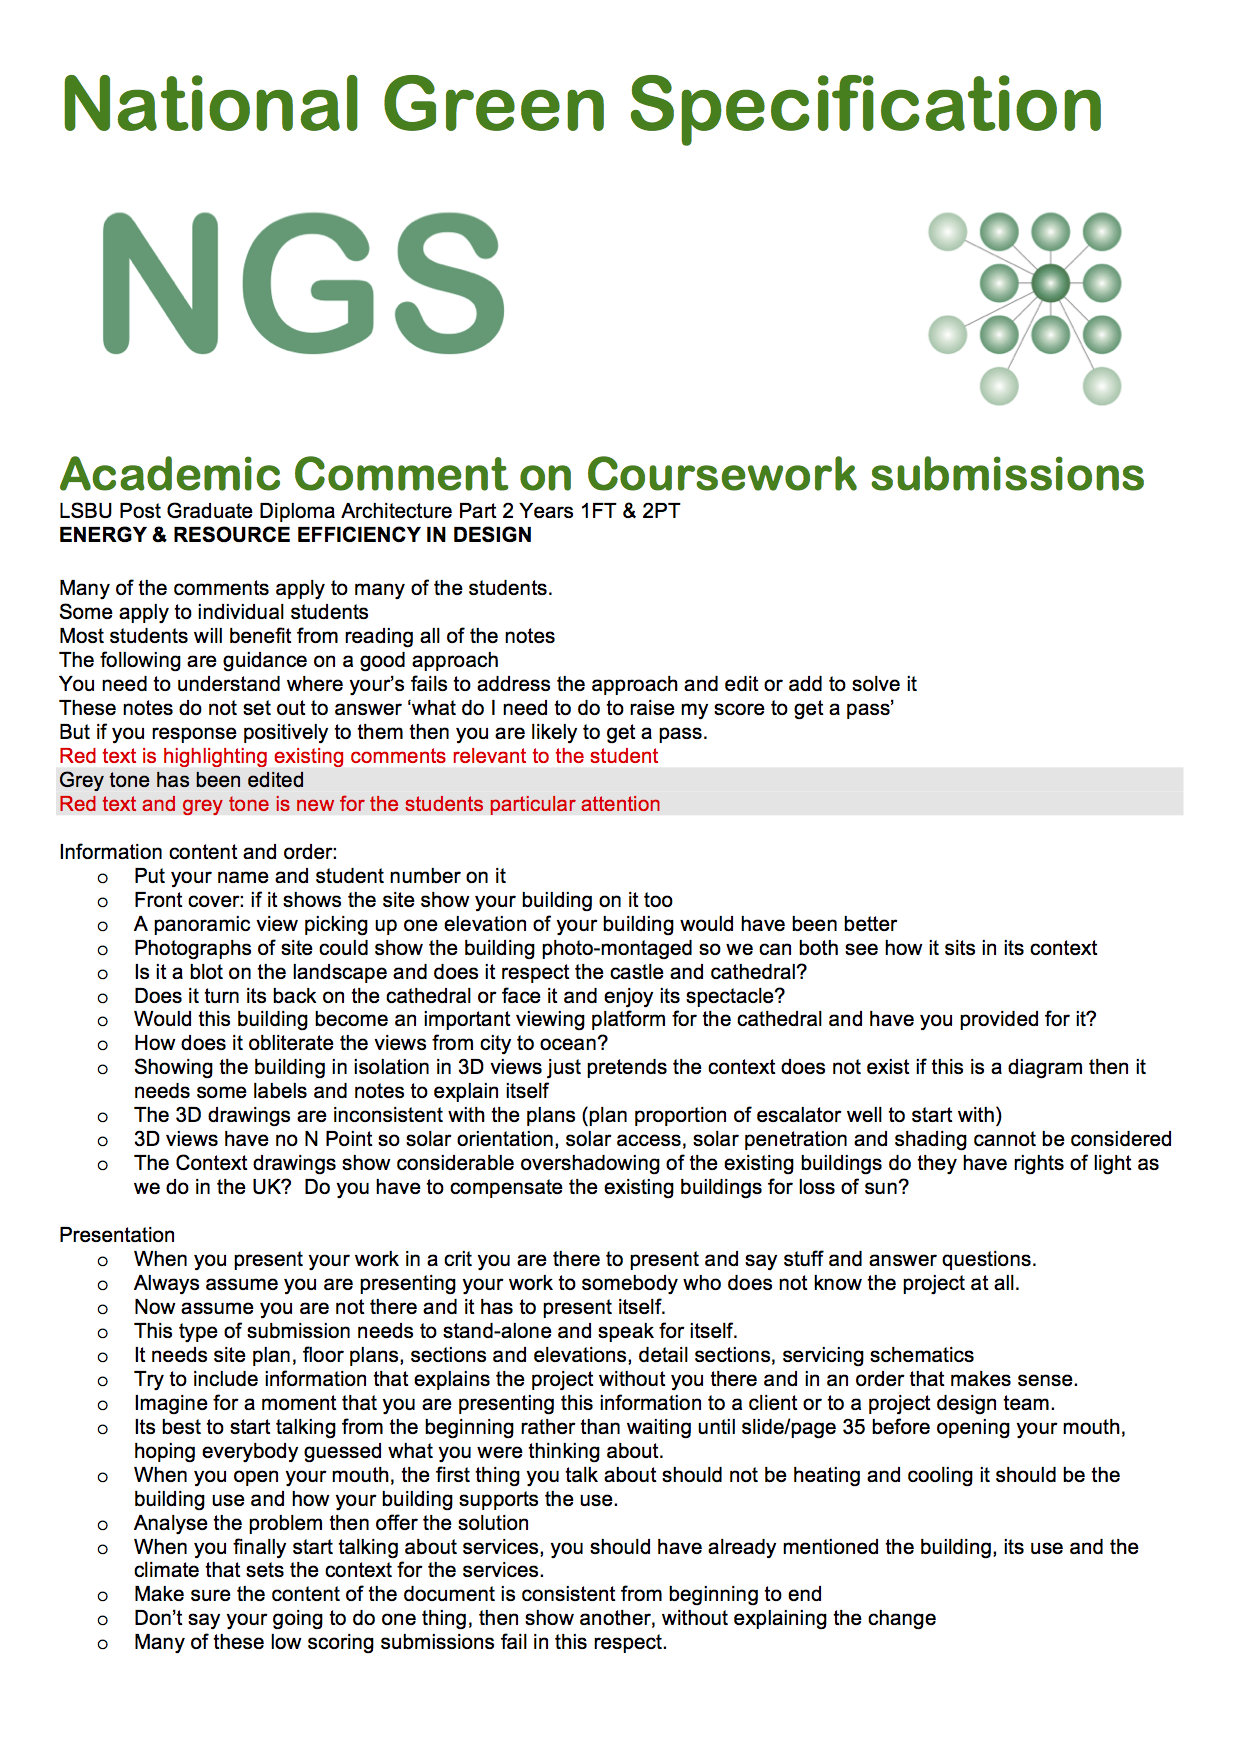 Academic Comment Coursework Submissions A12 BRM 070814 png